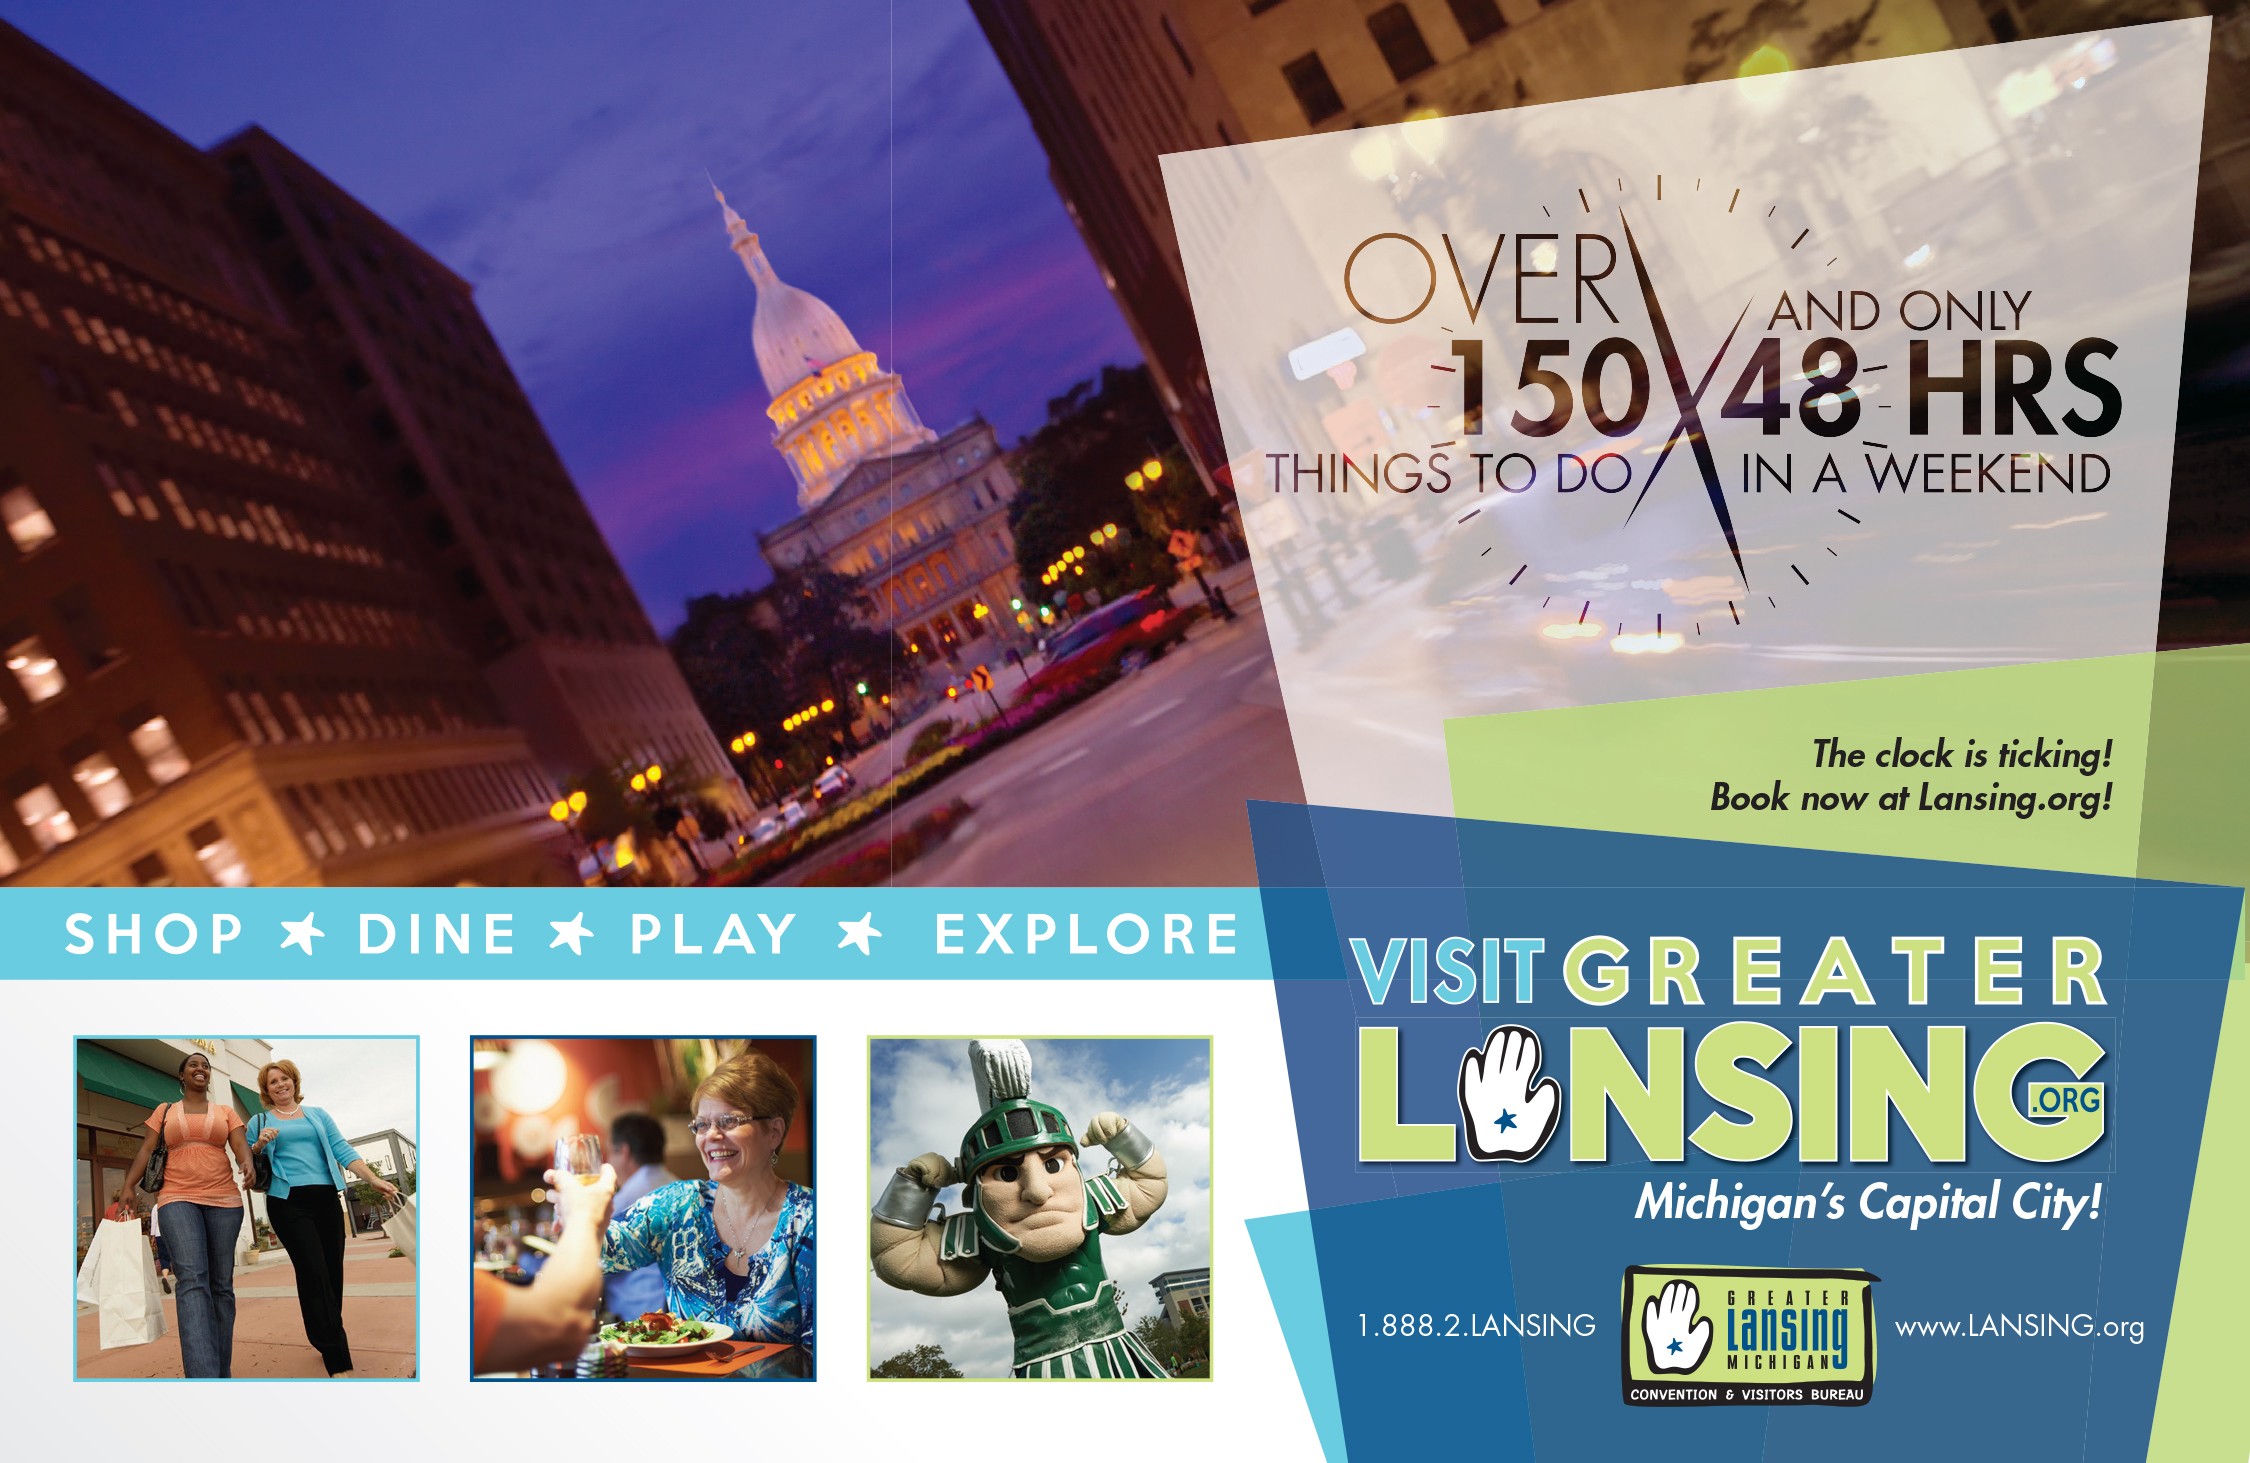 Things To Do In Central Michigan, Leisure Image - Greater Lansing Convention & Visitors Bureau